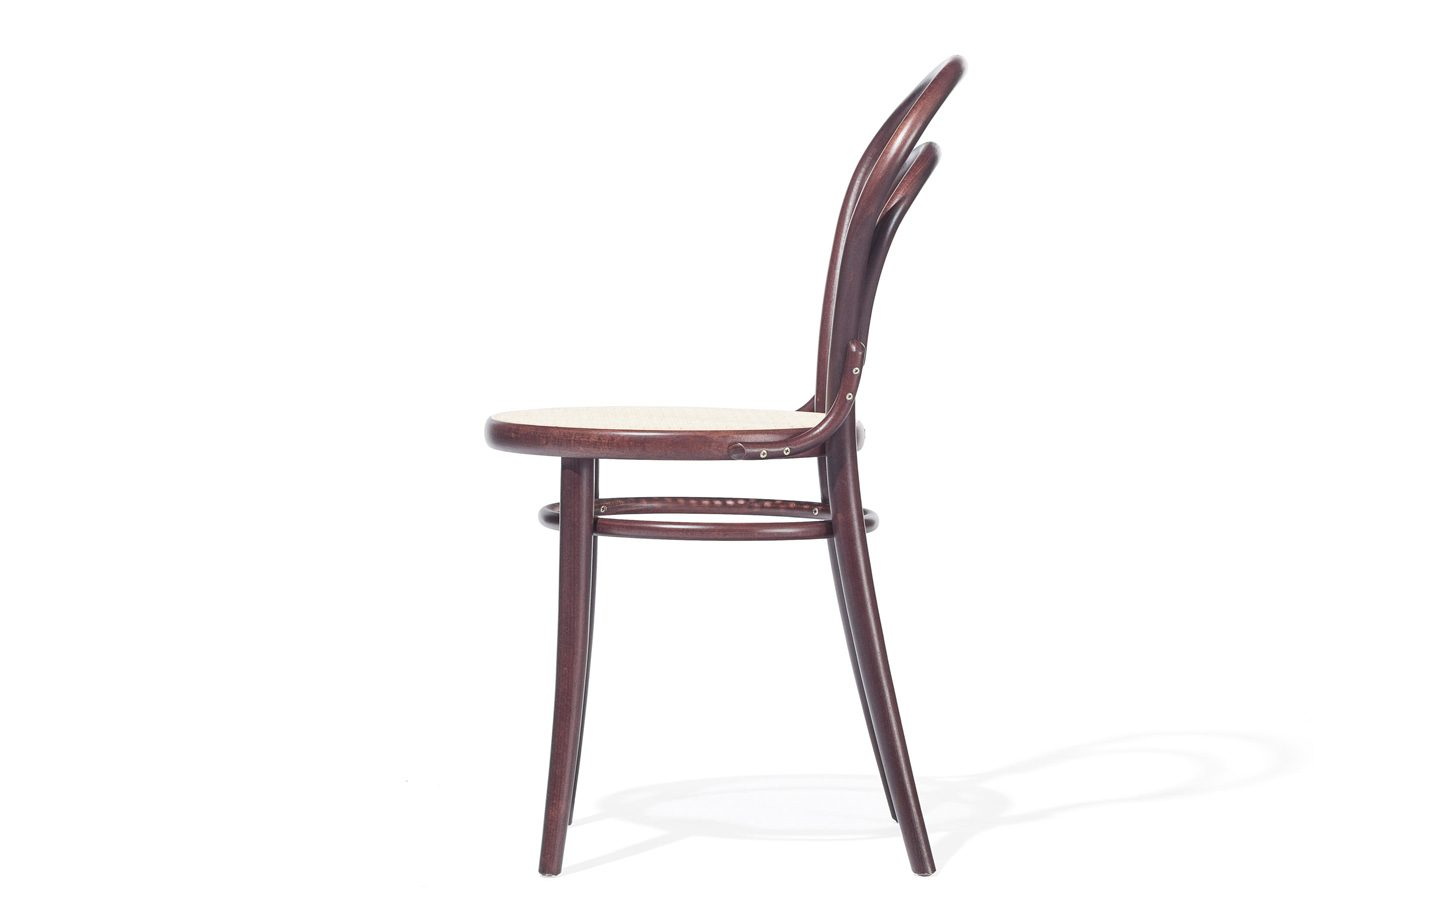 14-dining-chair-bent-wood-cane-seat-Ton-03